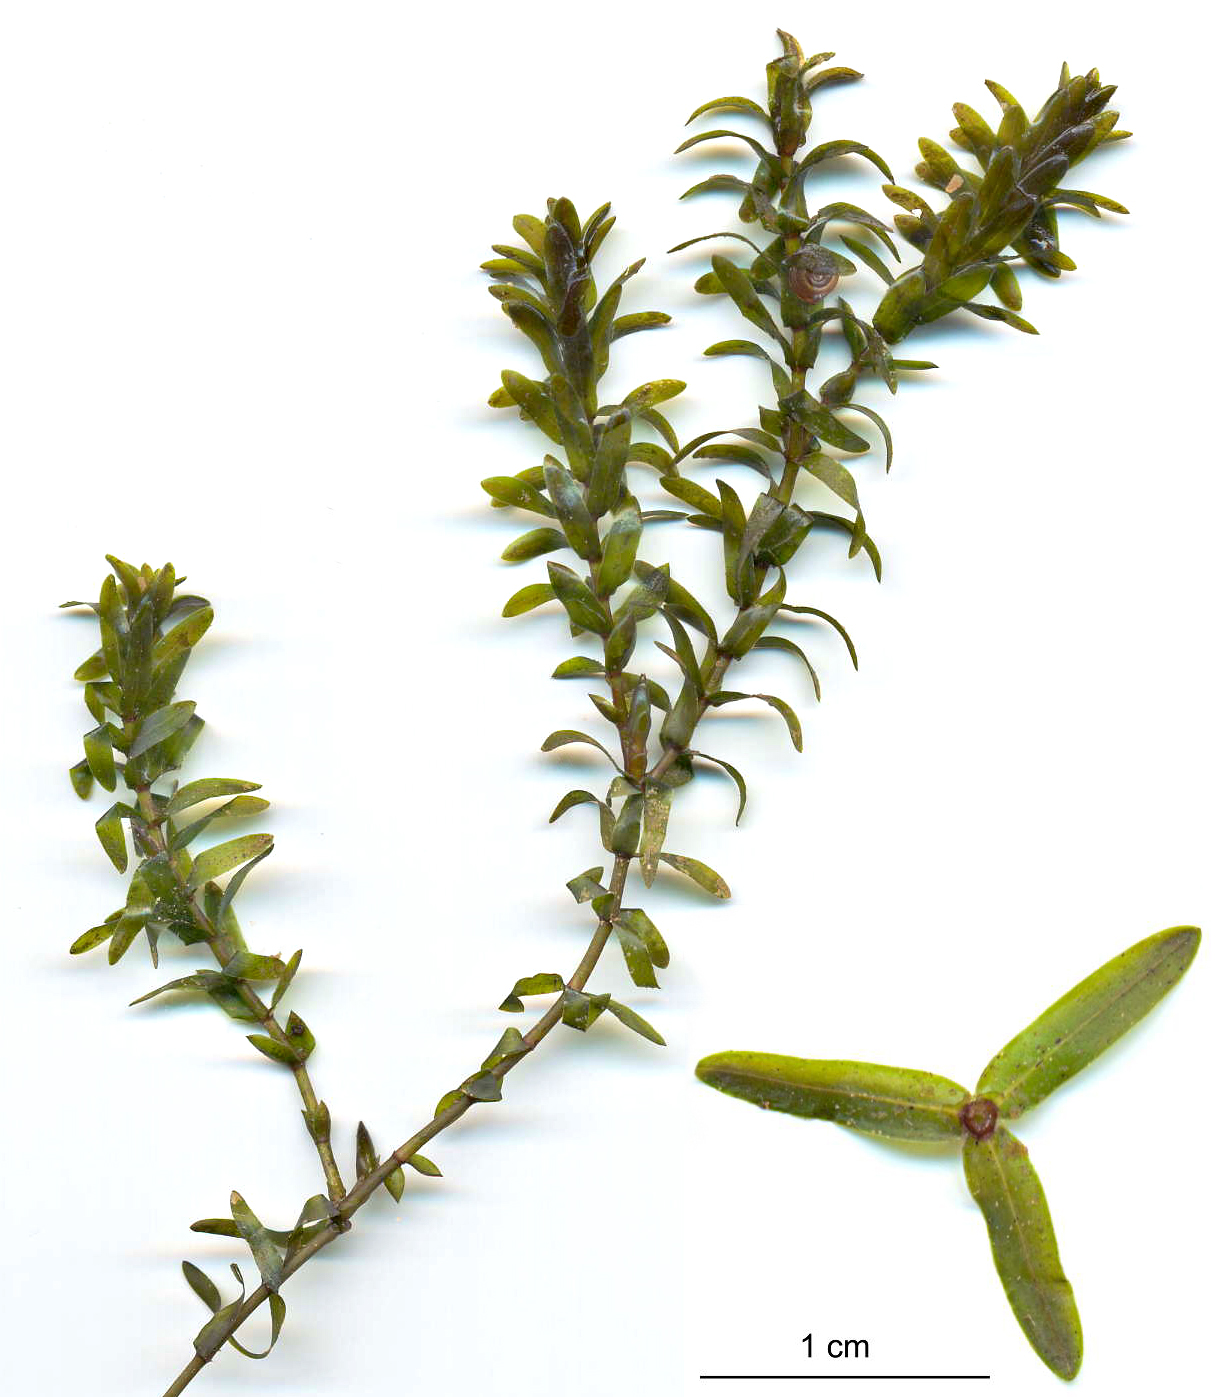 Canadian waterweed - Elodea canadensis 7